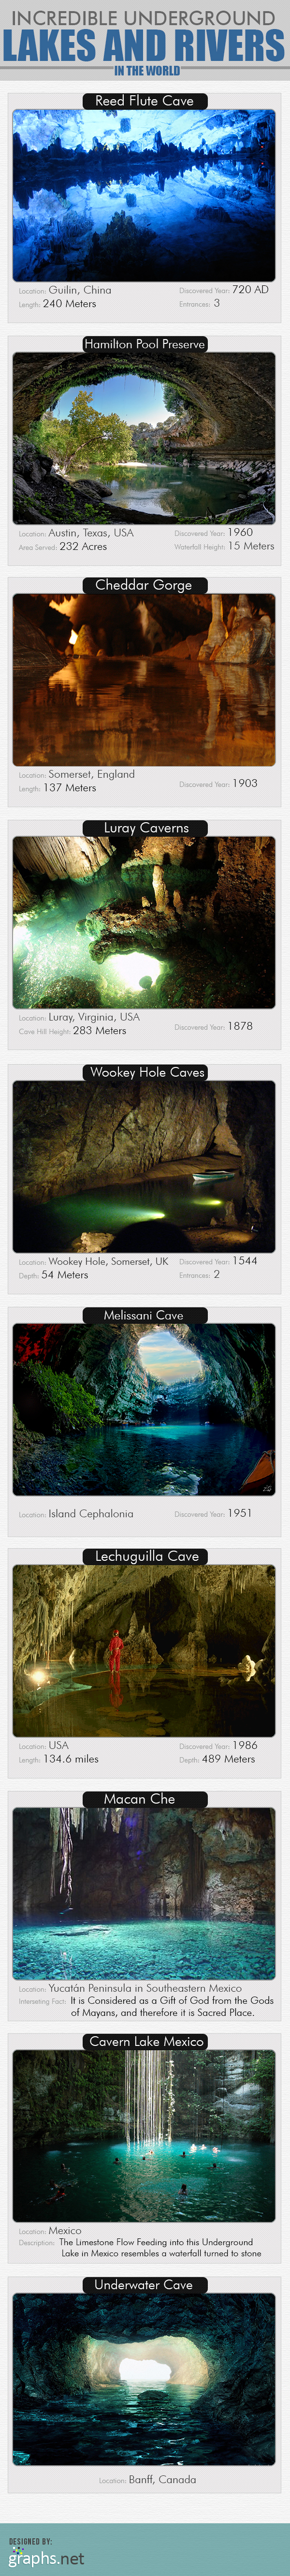 Incredible Underground Lakes and Rivers in the World